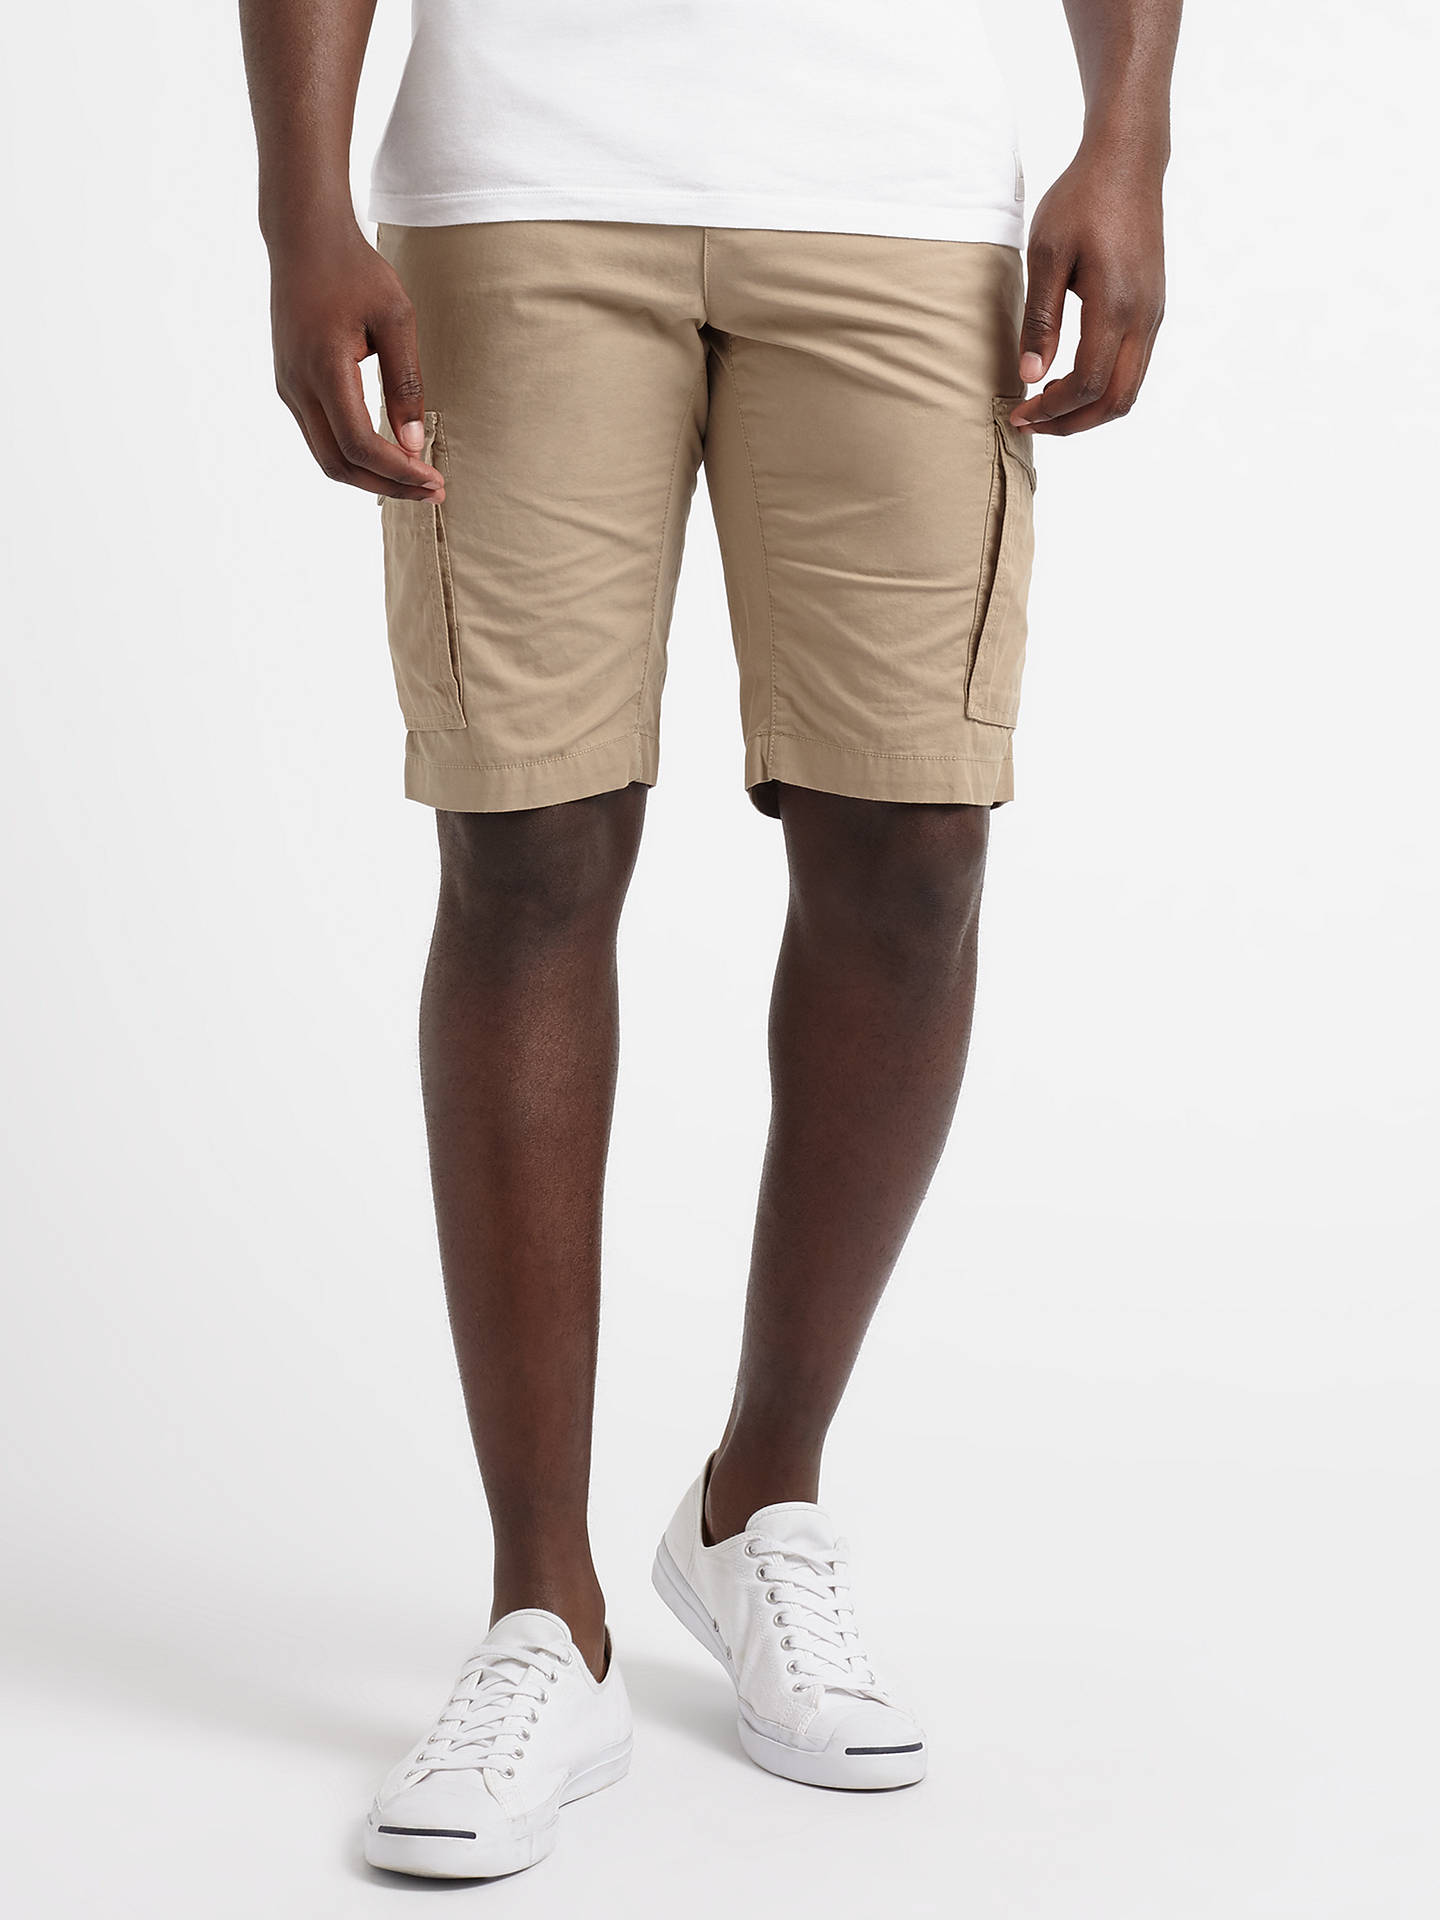 4ac23a17 Buy Tommy Hilfiger John Sort Light Twill Cargo Shorts, Batique Khaki, 30R  Online at ...